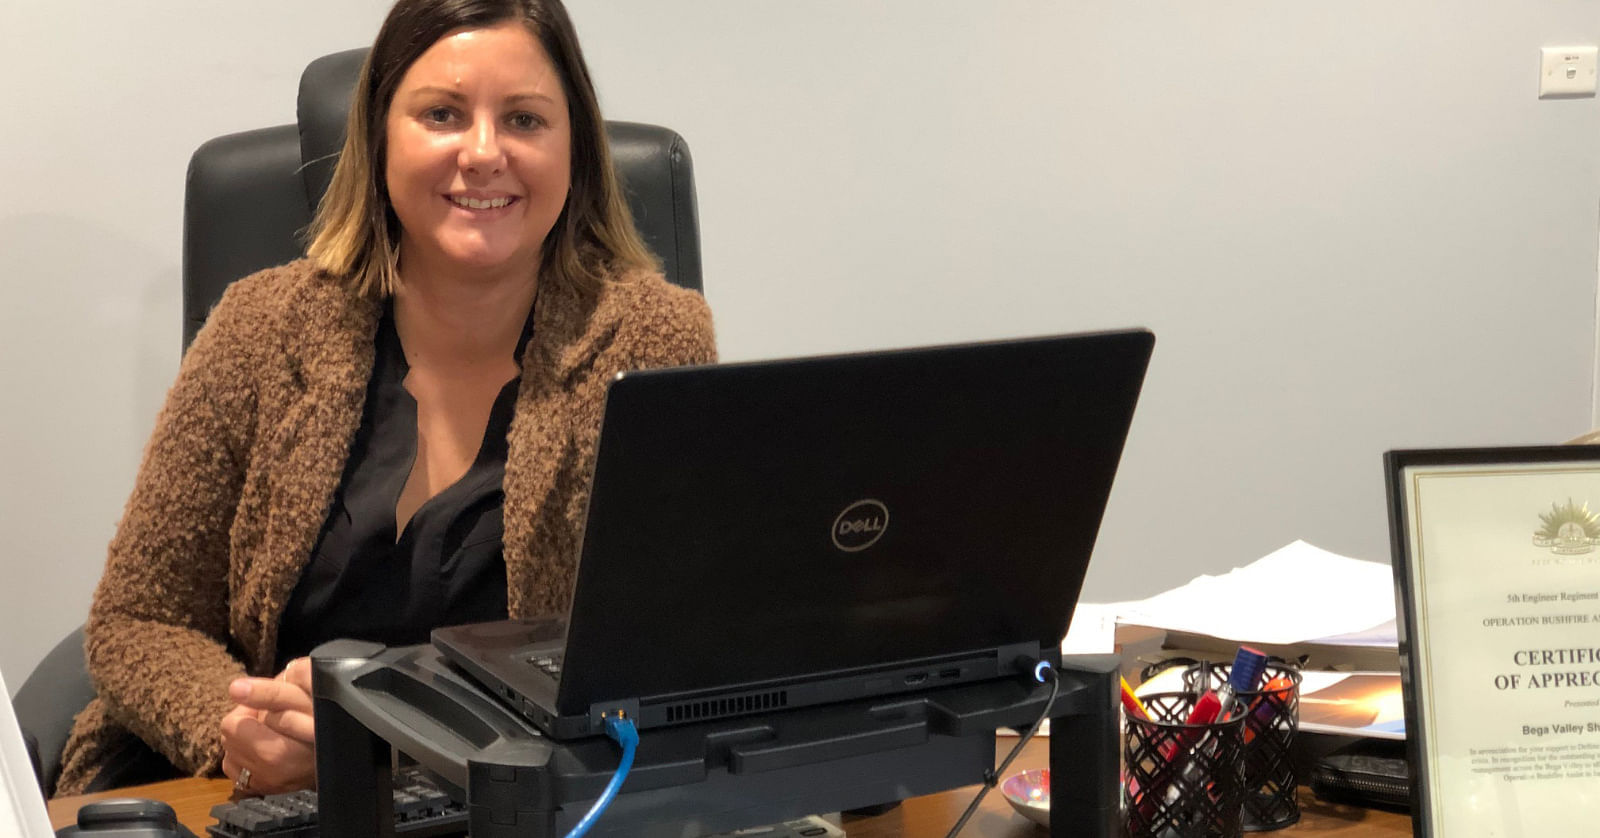 Photo: Kristy McBain, at work in her role as Mayor prior to her candidacy for Eden-Monaro.